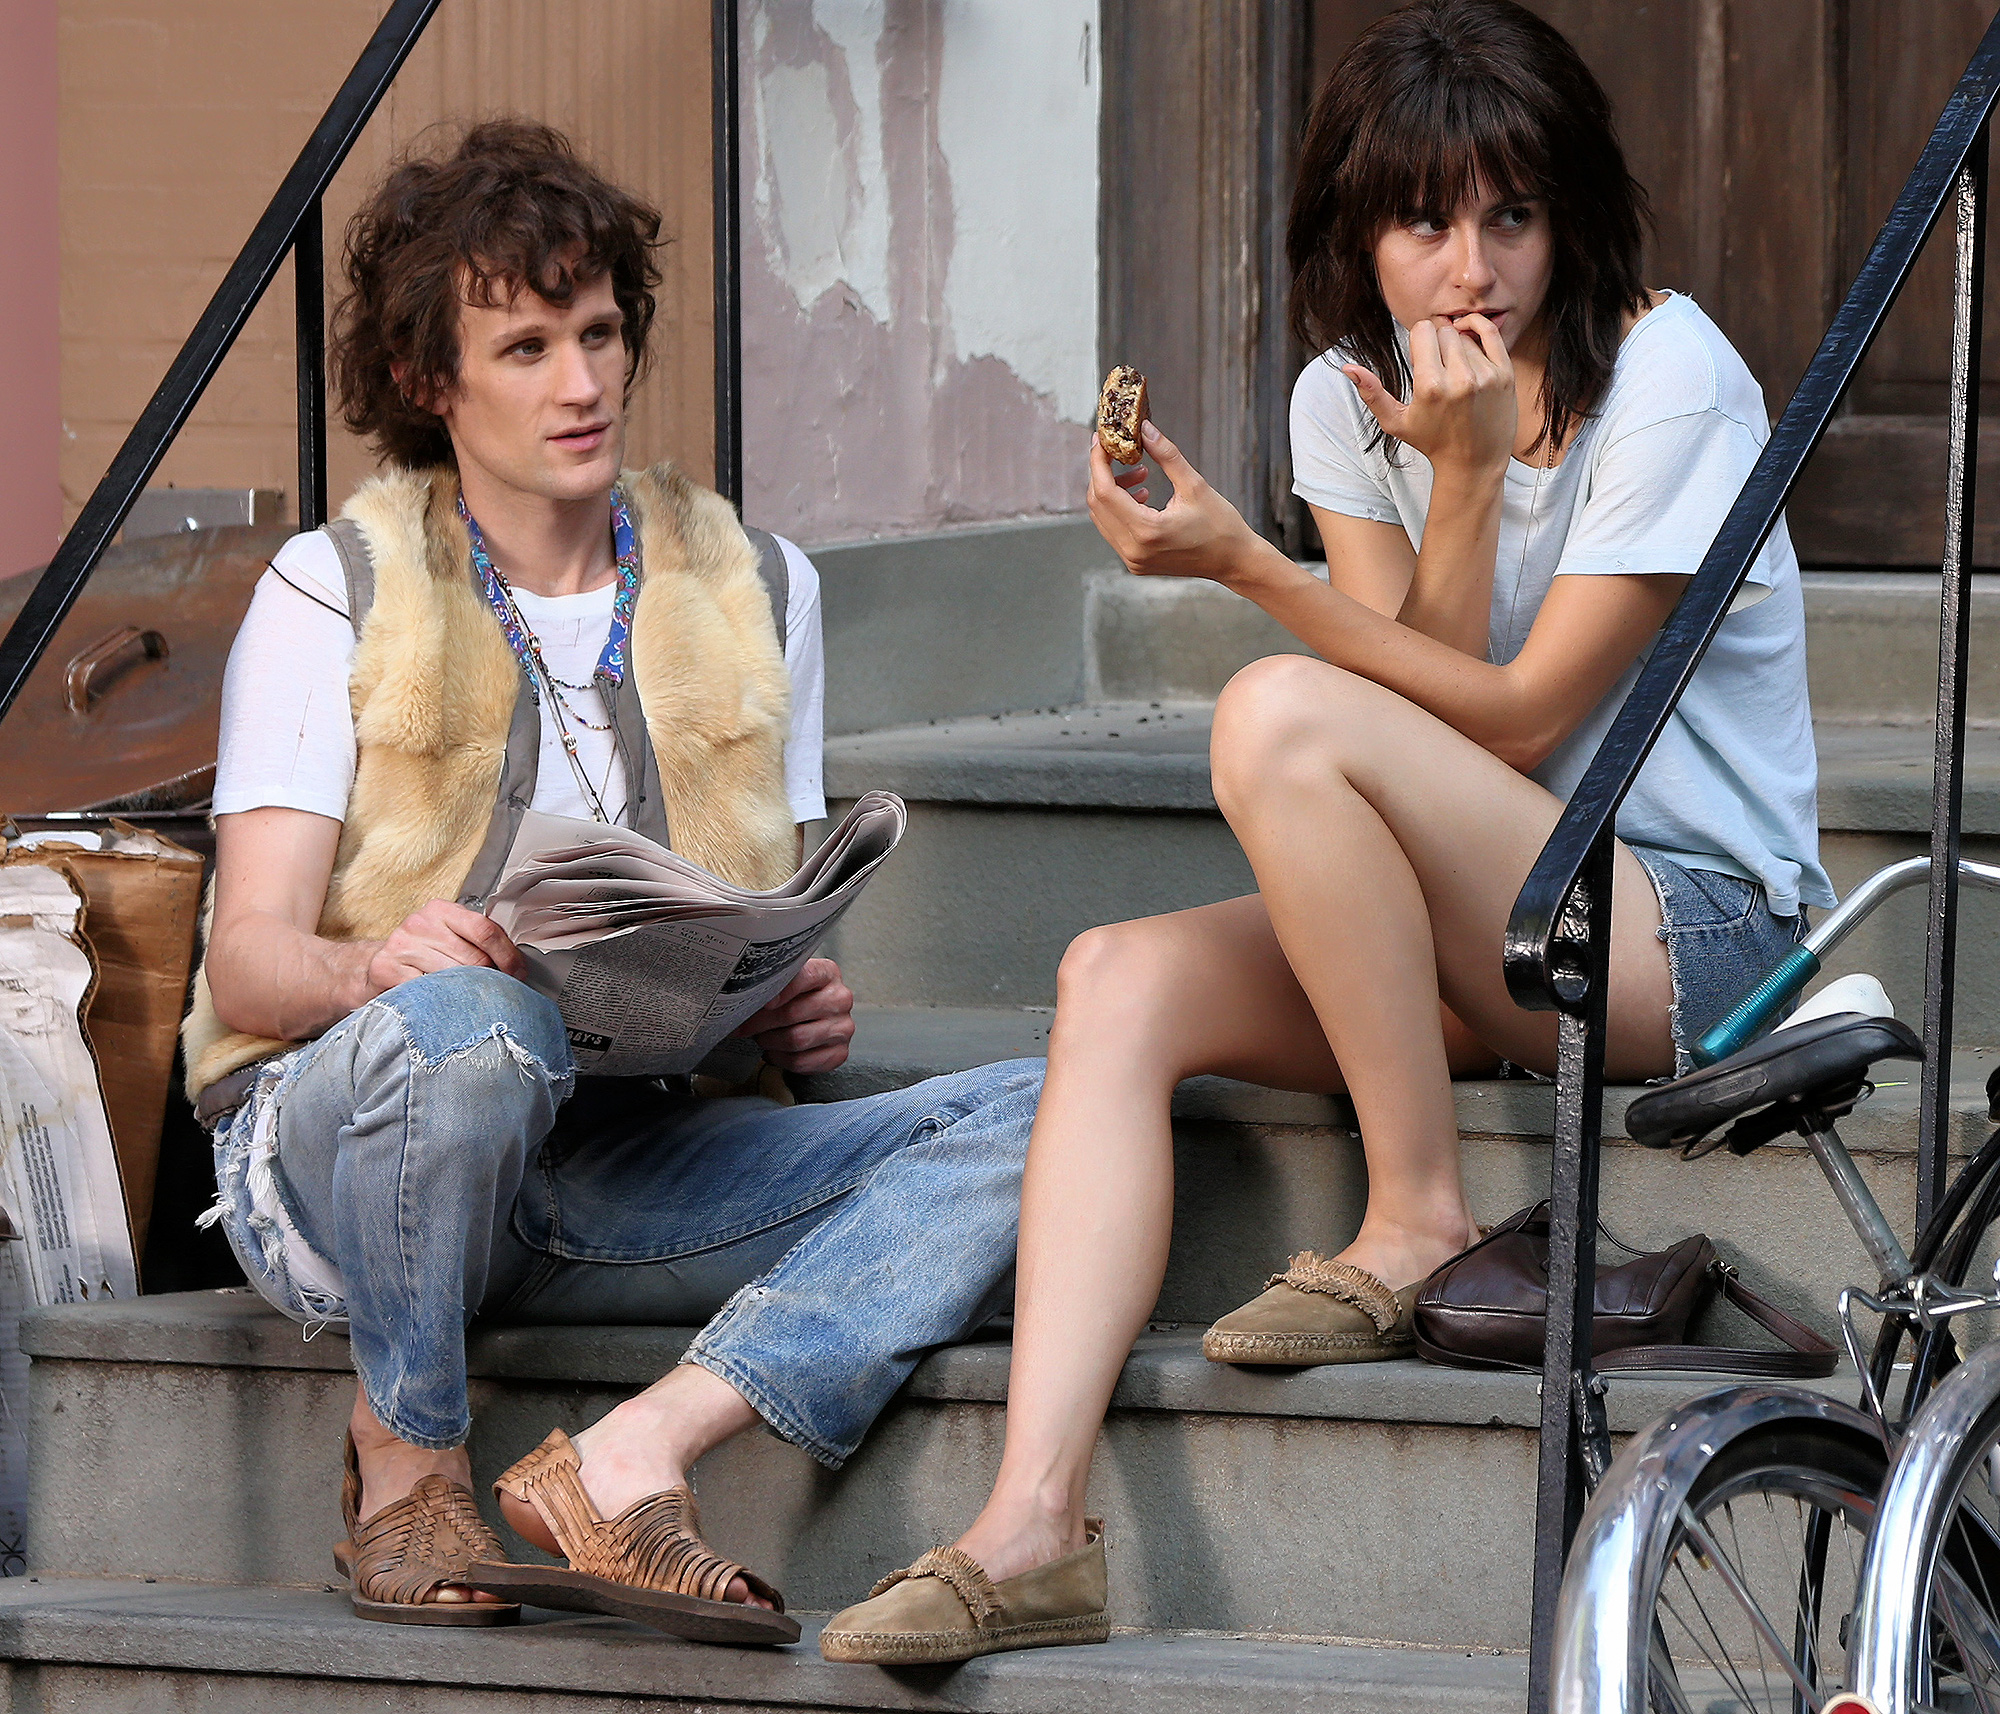 EXCLUSIVE: Actor Matt Smith and Marianne Rendon, playing Robert Mapplethorpe and Patti Smith respectively, film 'Mapplethorpe' directed by Ondi Timoner on a stoop in Greenwich Village in New York City.